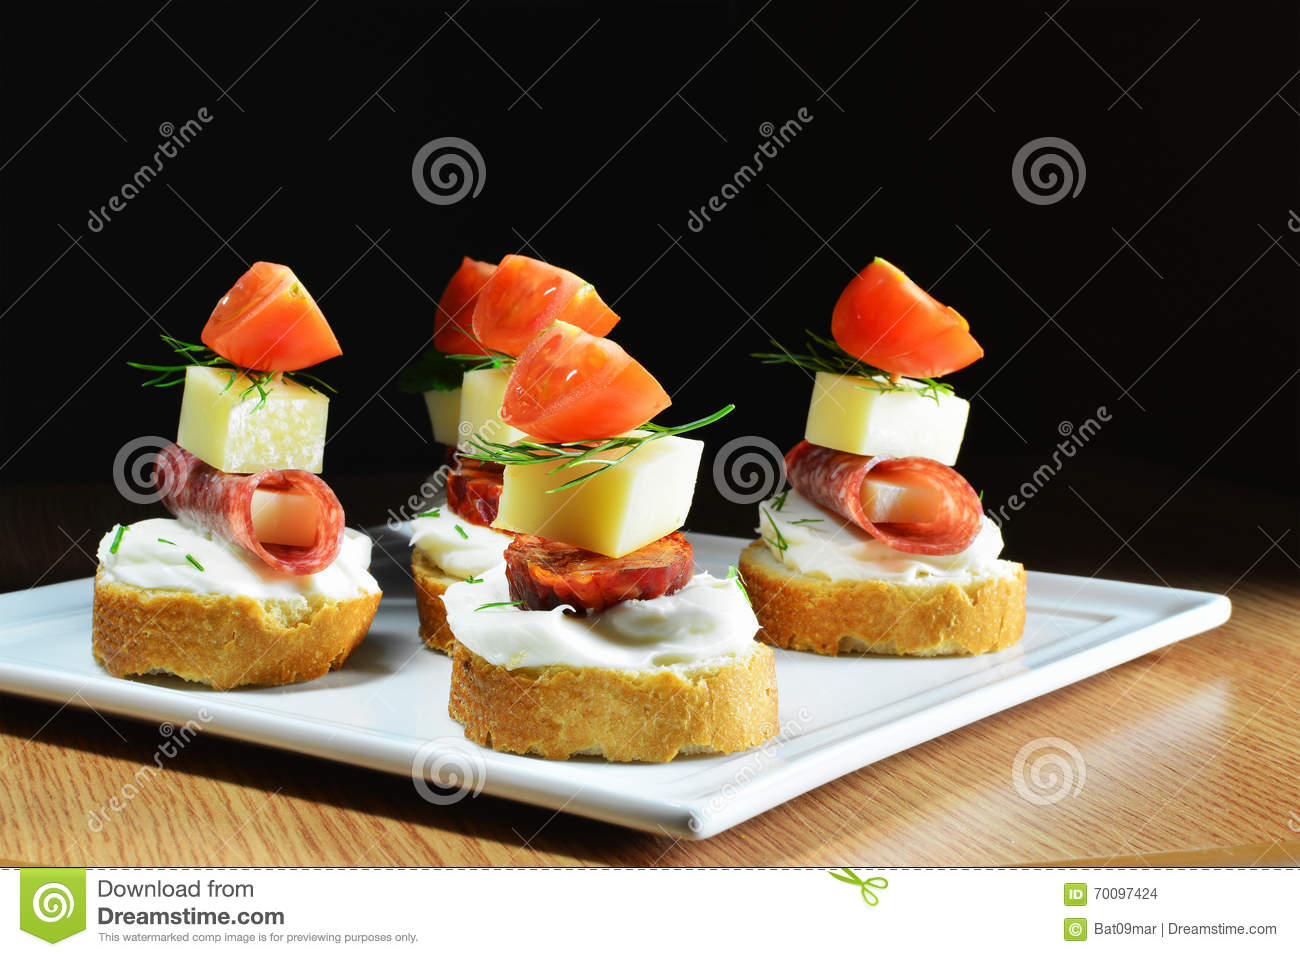 fingerfood k se salami wurstscheiben und tomaten stockfoto bild 70097424. Black Bedroom Furniture Sets. Home Design Ideas